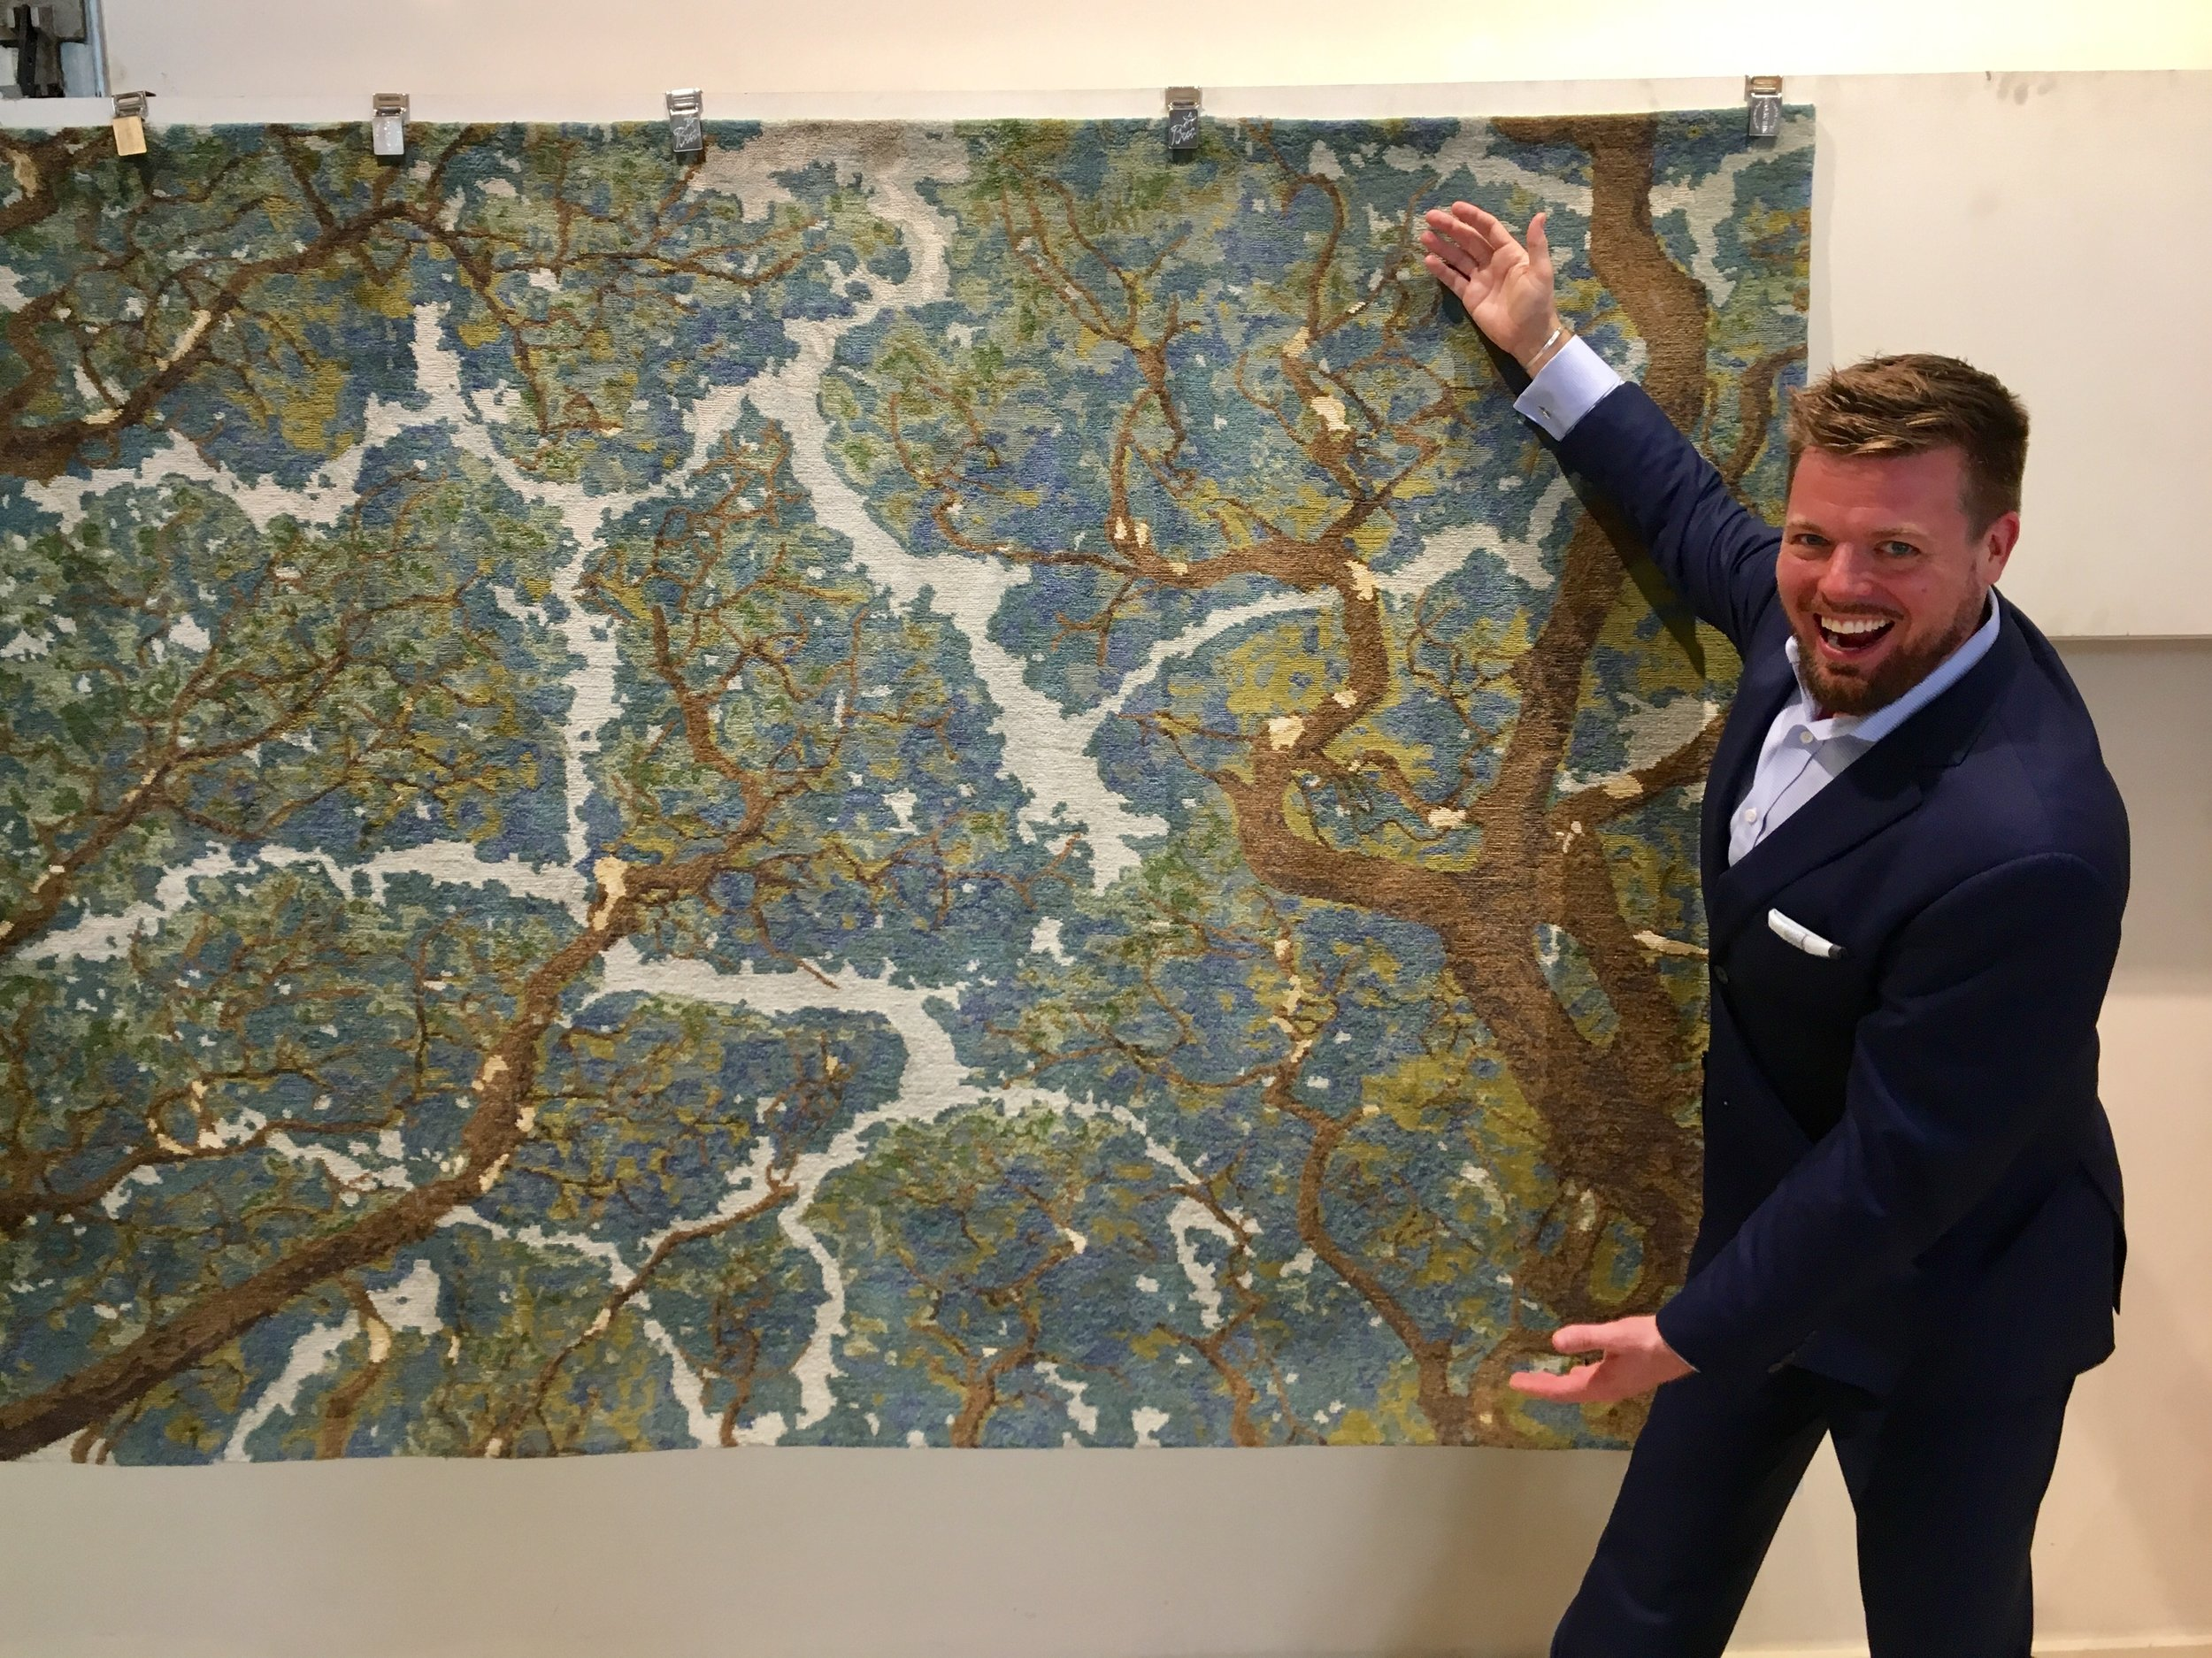 Boston Interior Designer Dane Austin with his new rug design at Landry & Arcari Showroom in Boston, MA.